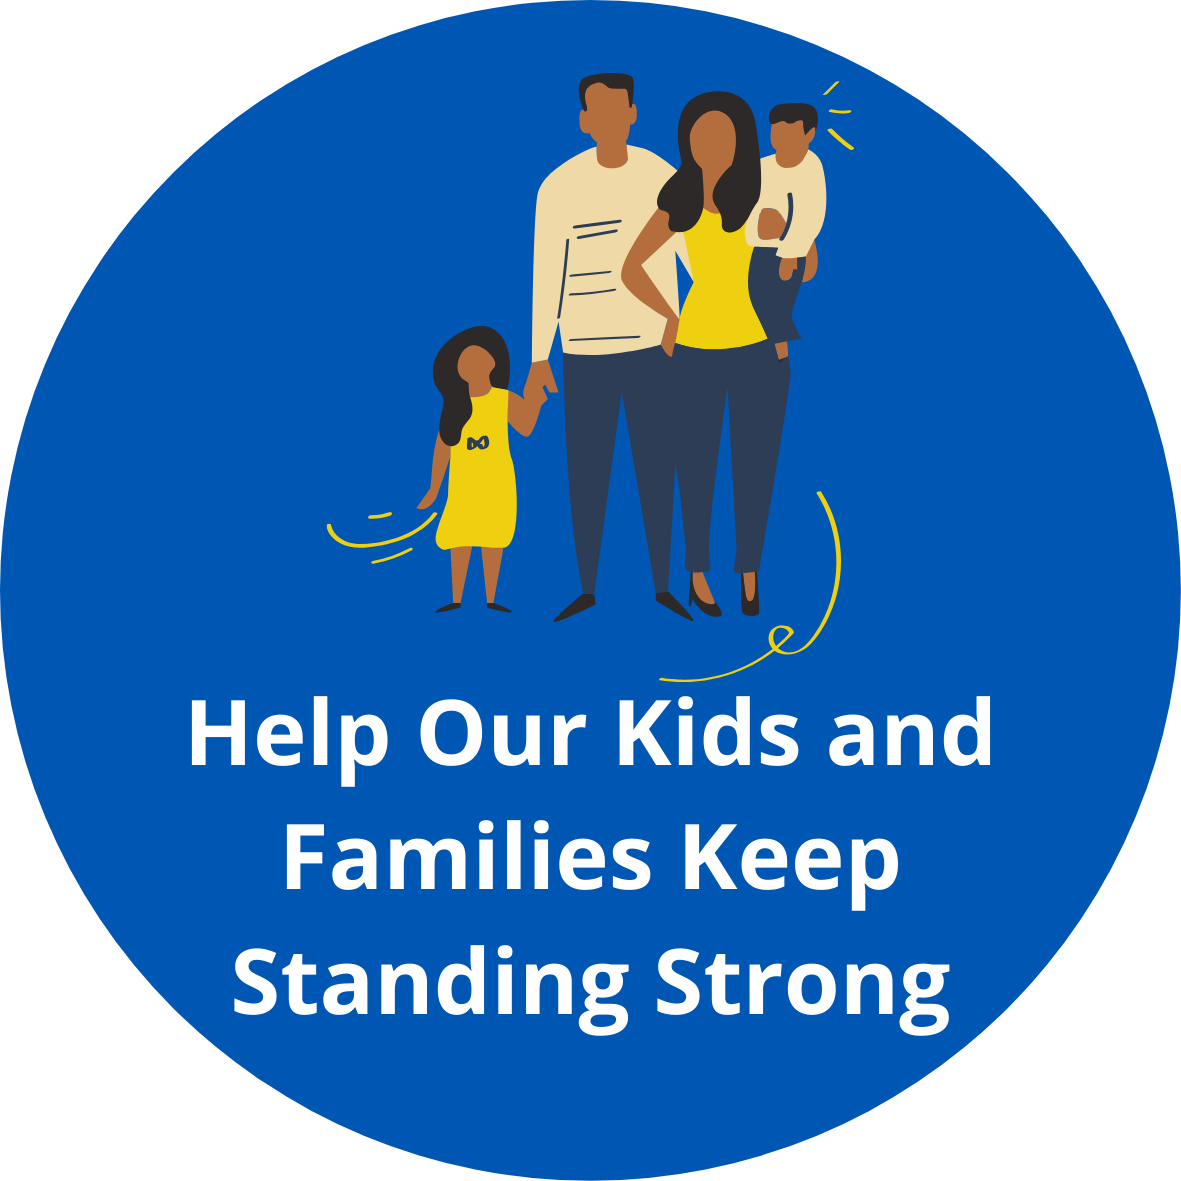 Help Our Kids and Families Keep Standing Strong